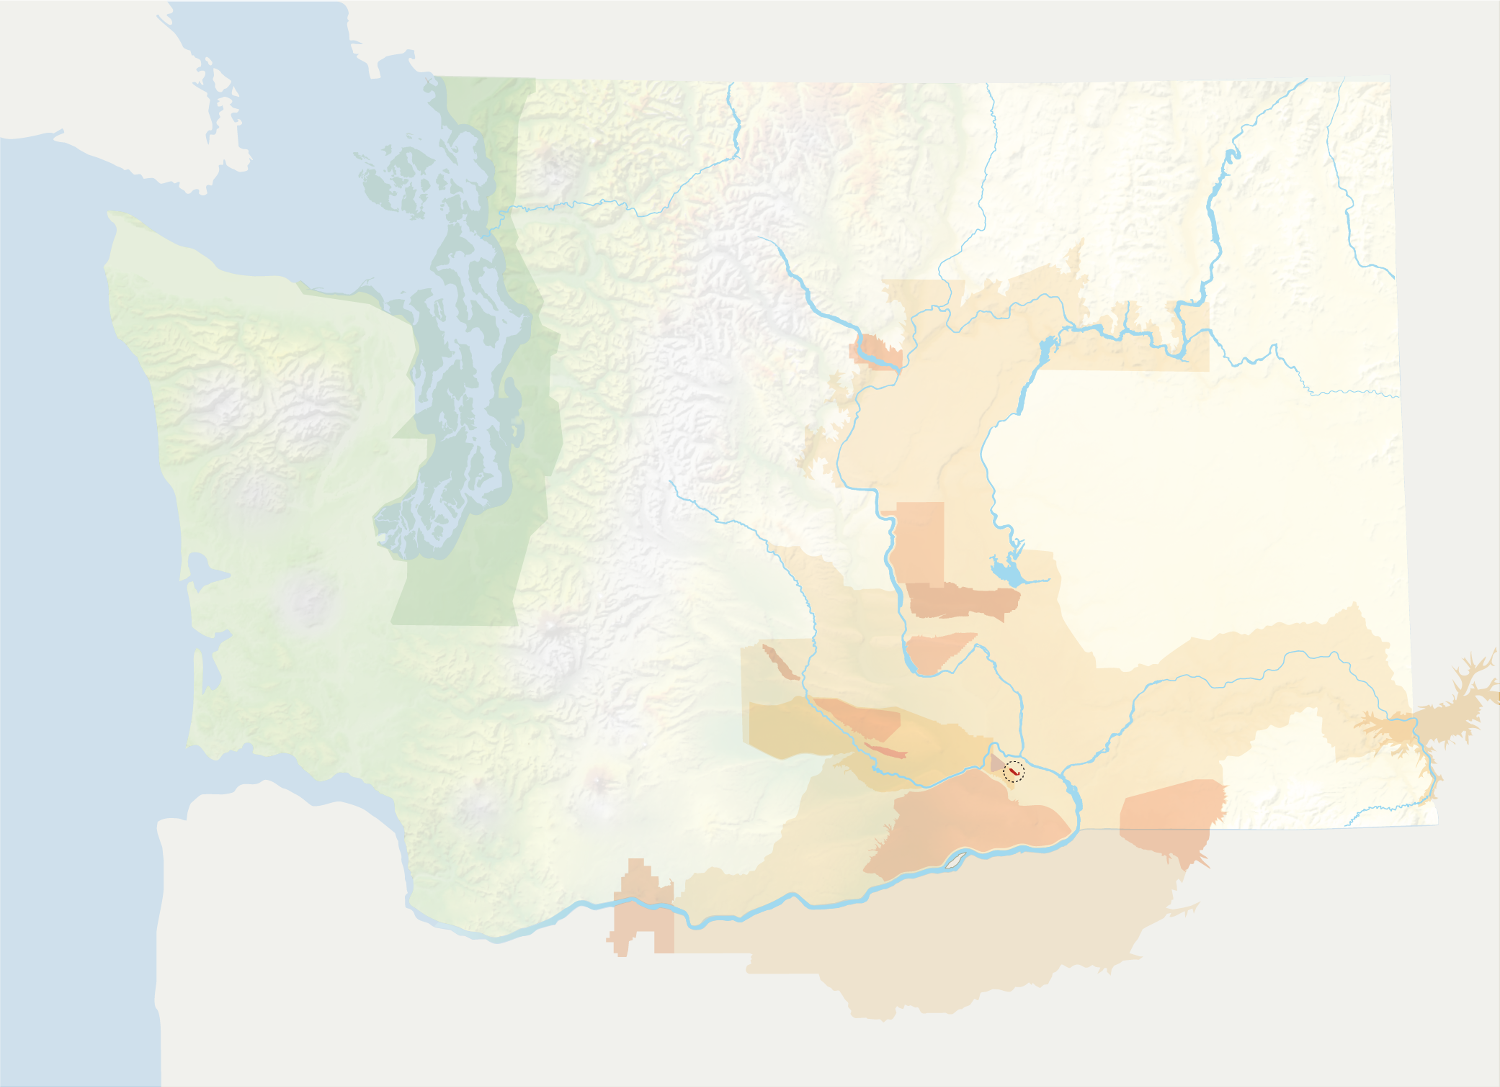 Map of Washington with the Candy Mountain AVA in red, surrounded by the rest of the AVAs in muted greens and oranges.